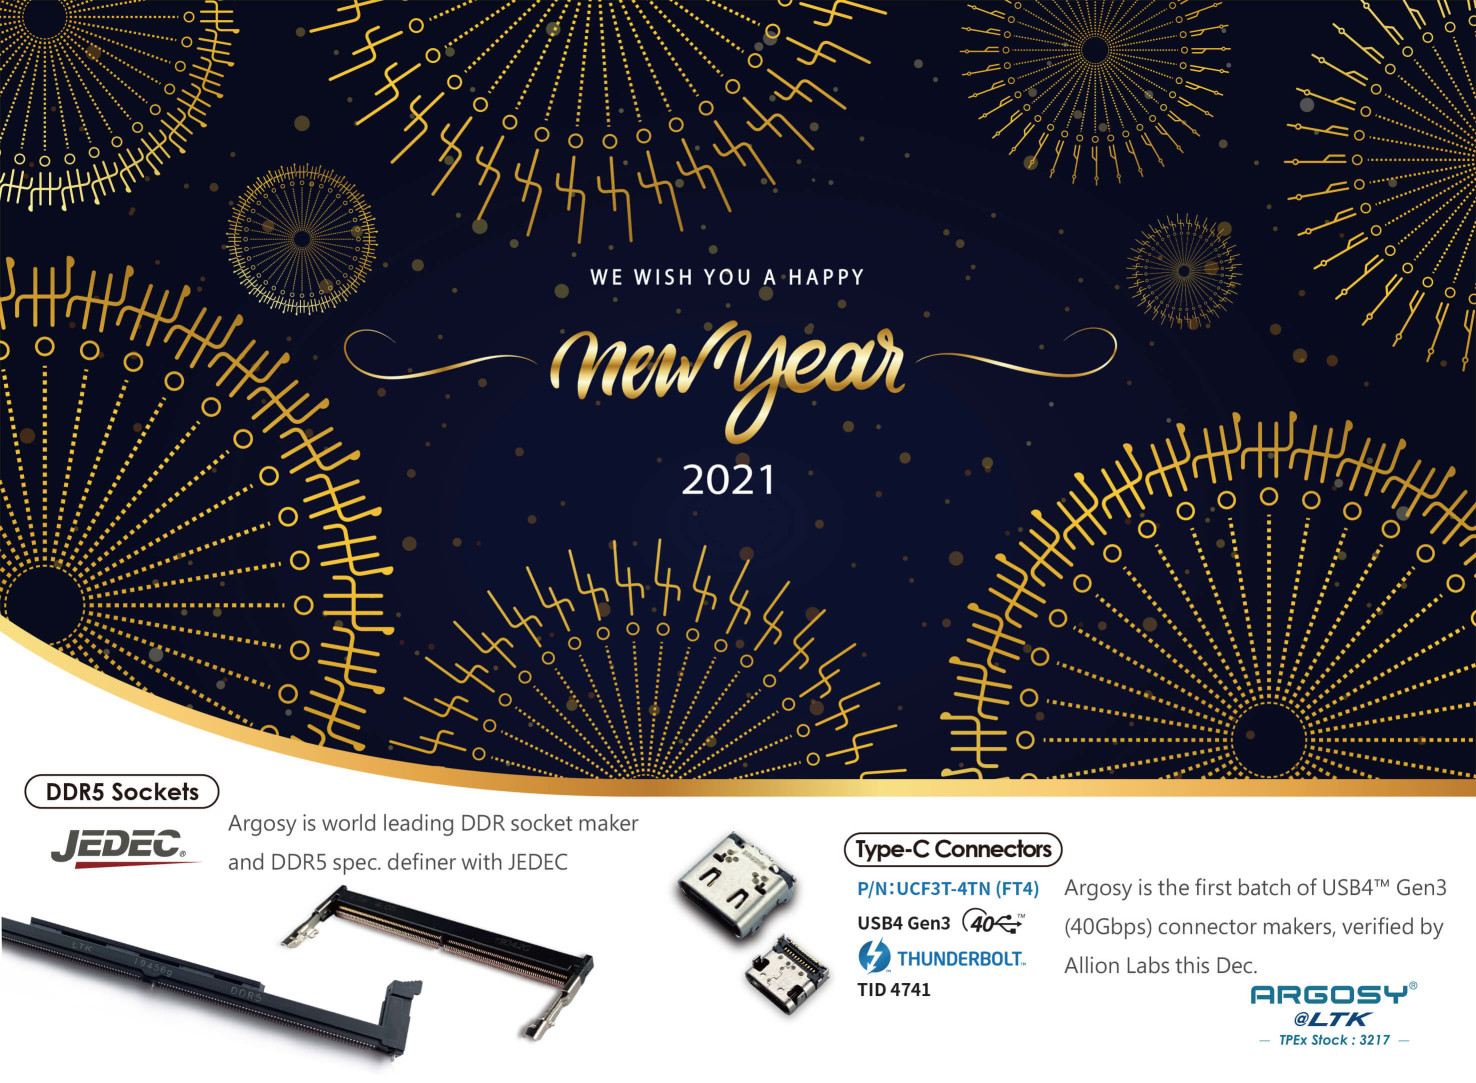 2021 New Year, Product of 2021, DDR5 and USB-C connectors